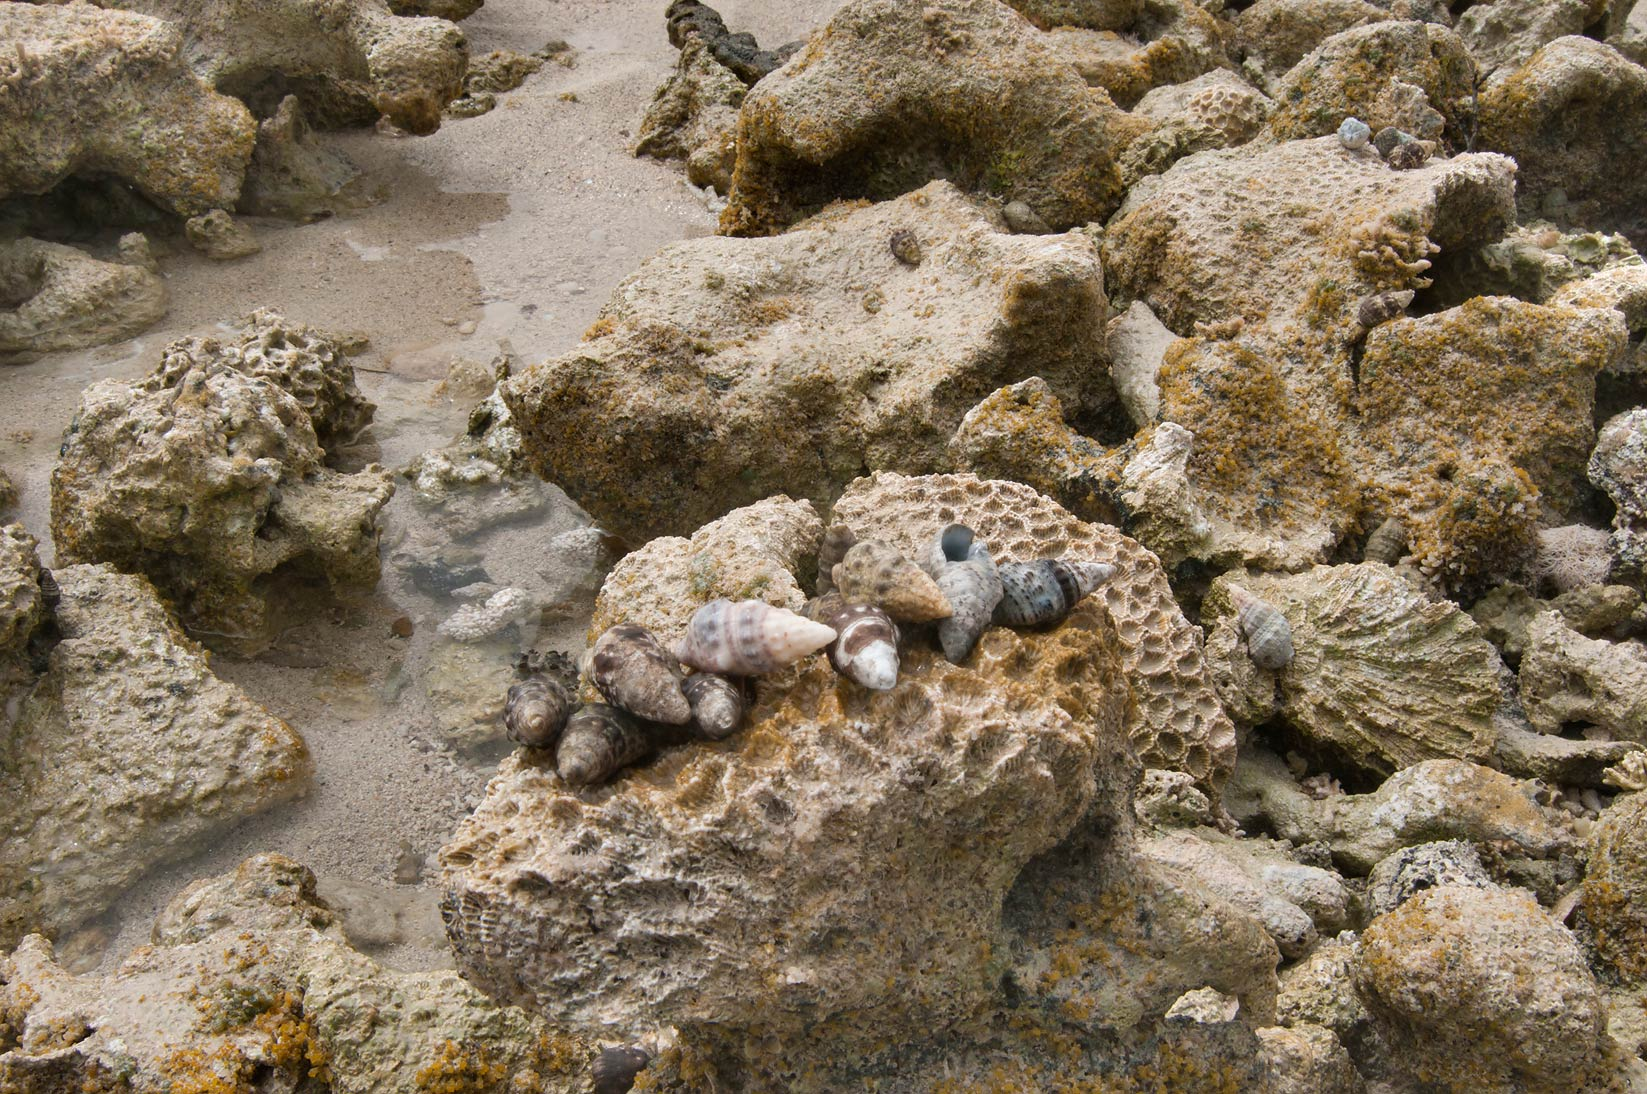 Corals and sea snails at low tide on a beach of...tip of Qatar, east from Ruwais